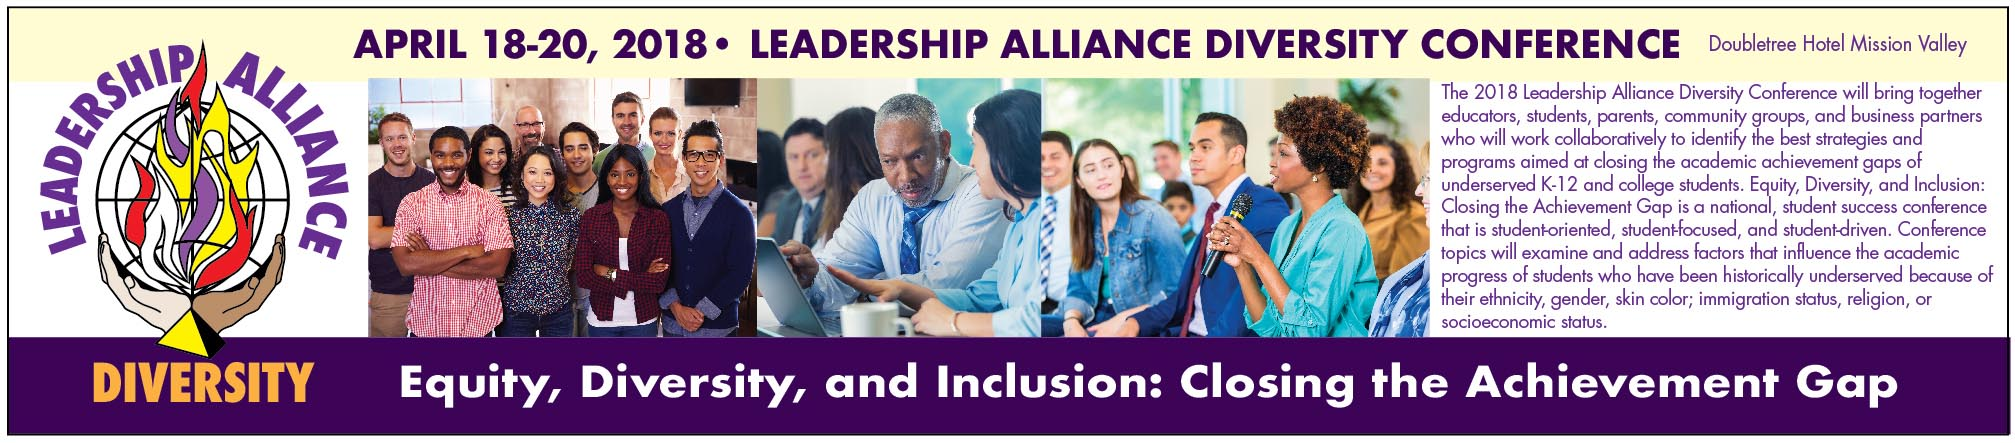 Leadership Alliance STD Design